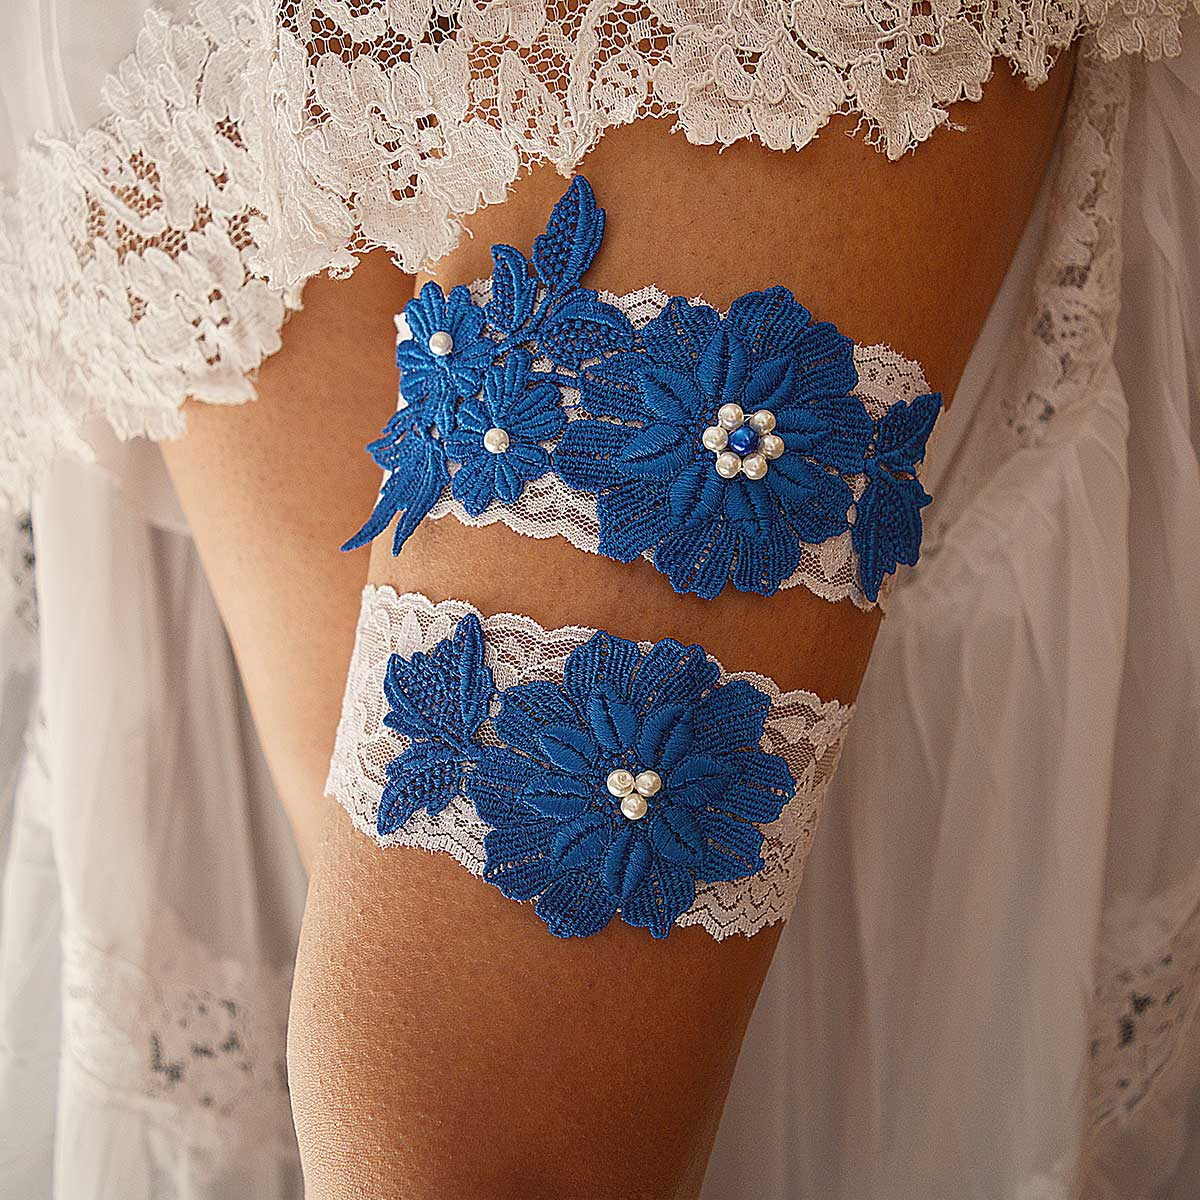 White Bridal Garter With Royal Blue Flower Applique & Pearls